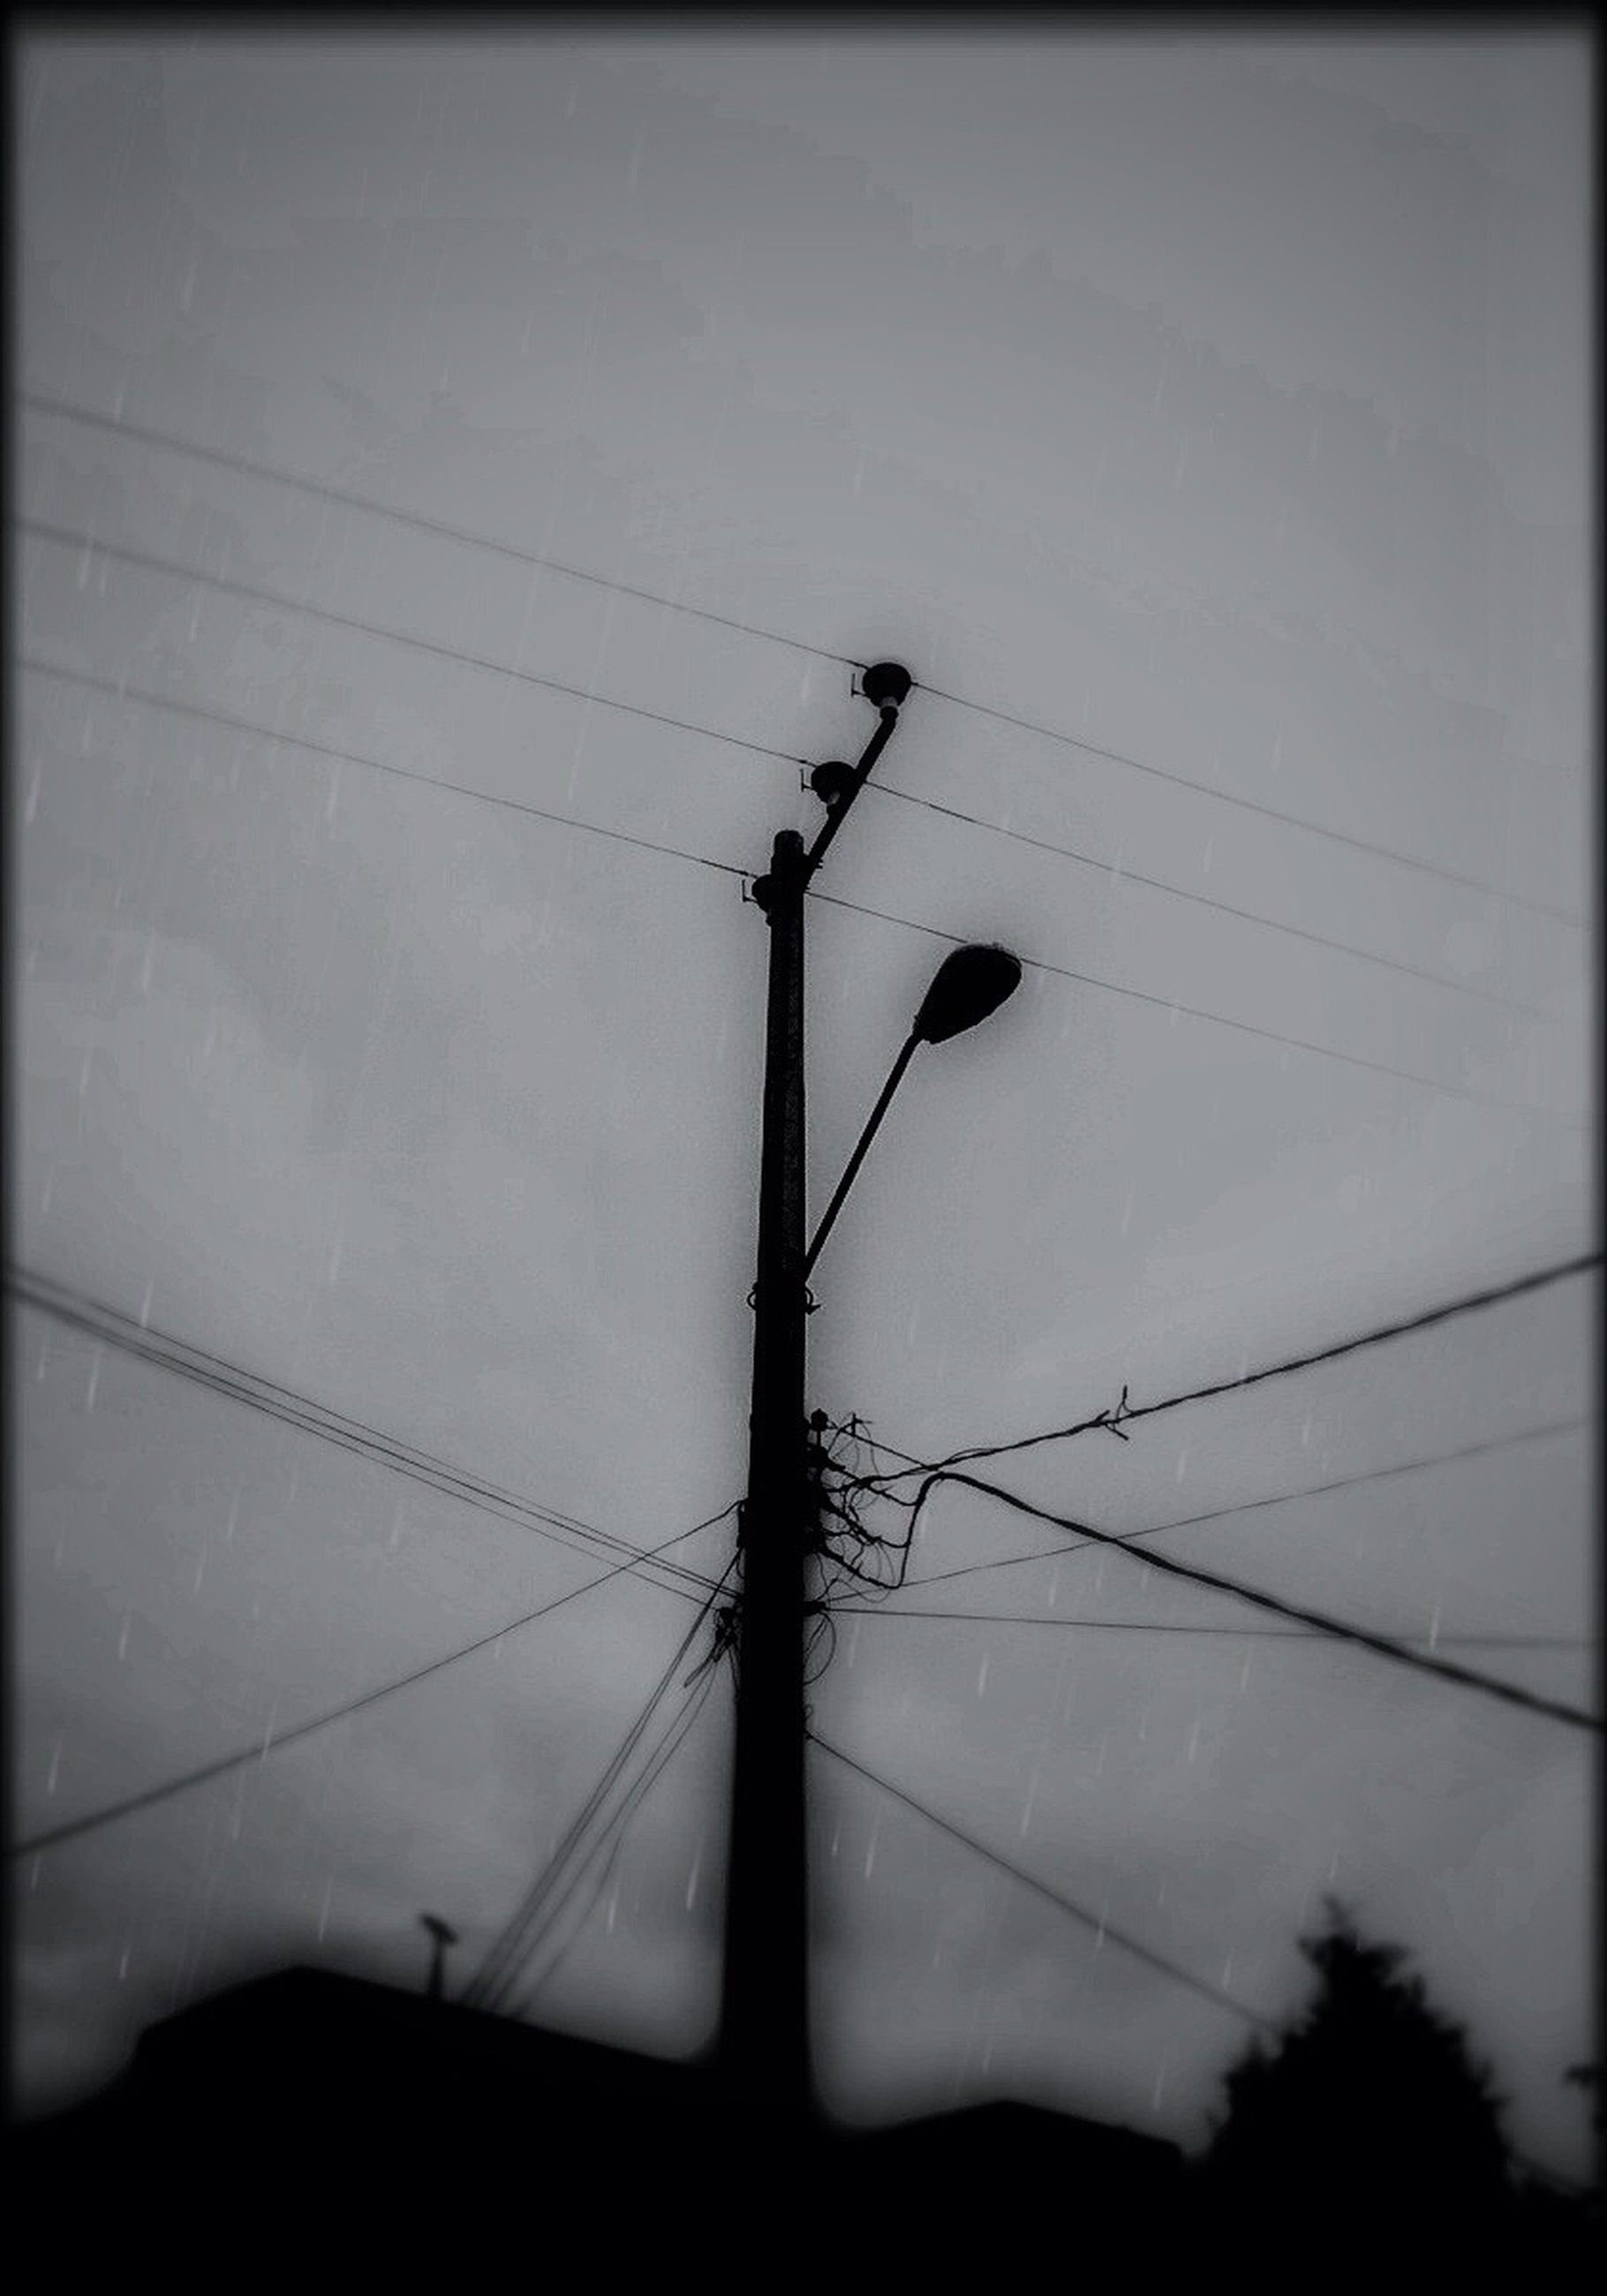 power line, electricity, power supply, electricity pylon, fuel and power generation, low angle view, cable, connection, technology, silhouette, power cable, sky, dusk, outdoors, no people, nature, telephone pole, tranquility, pole, cloud - sky